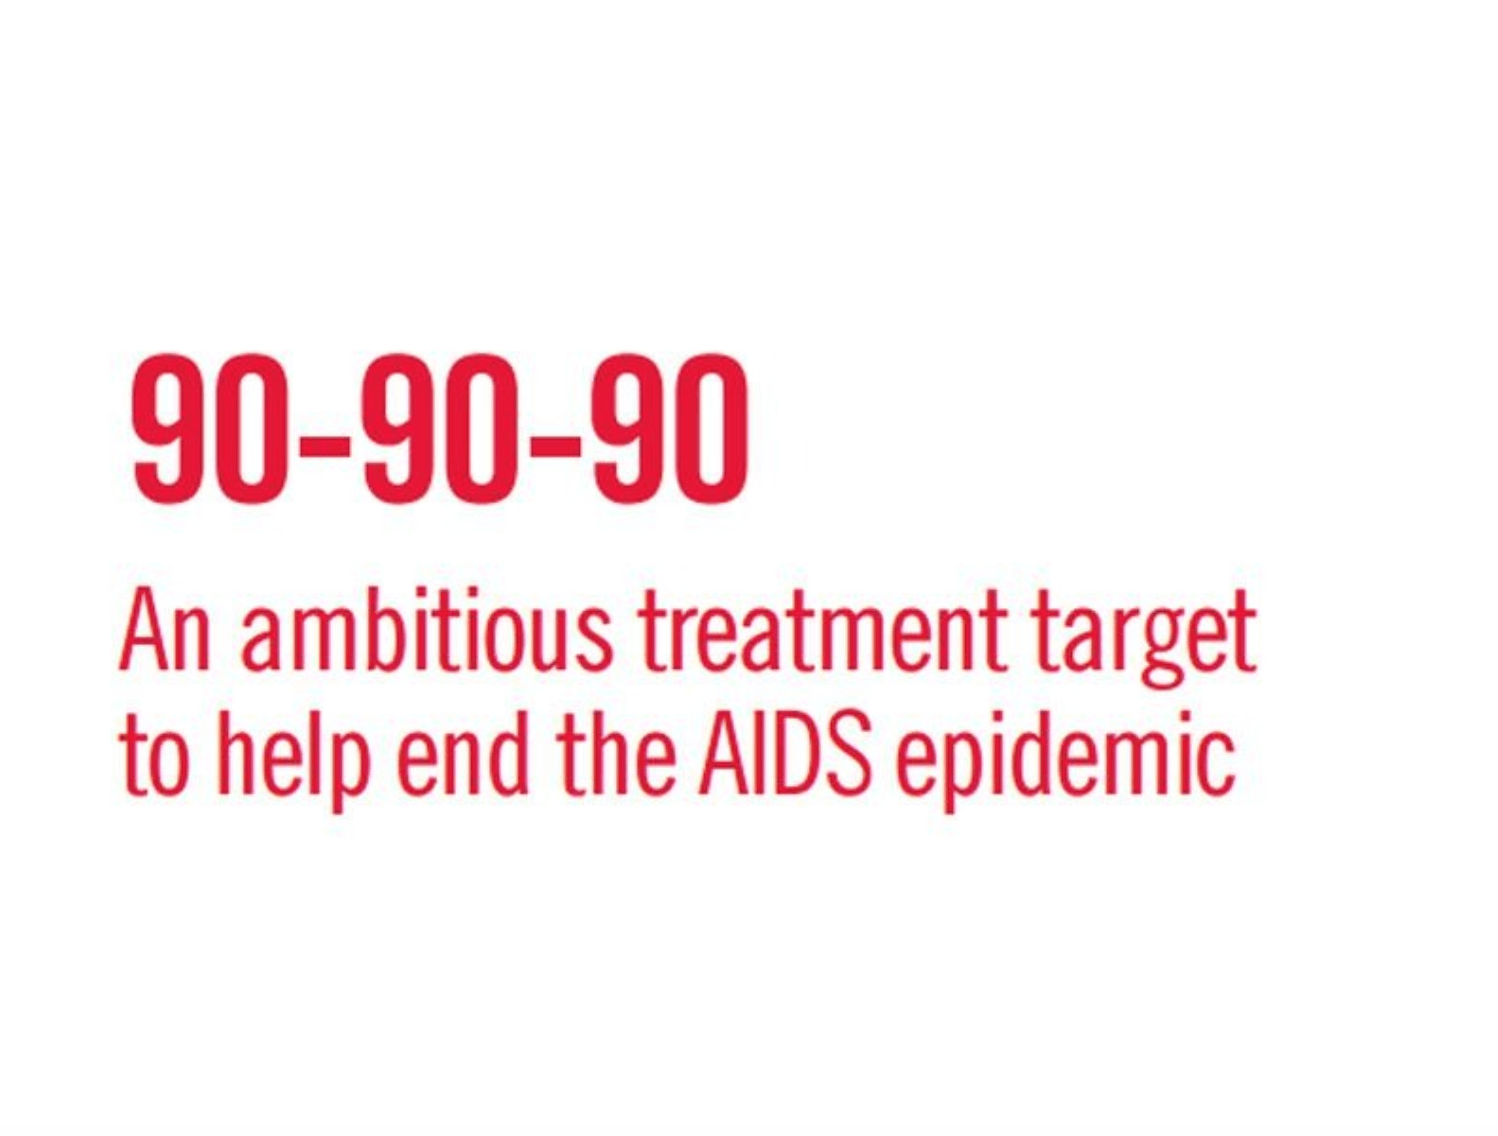 Researchers pushing for HIV elimination by 2030